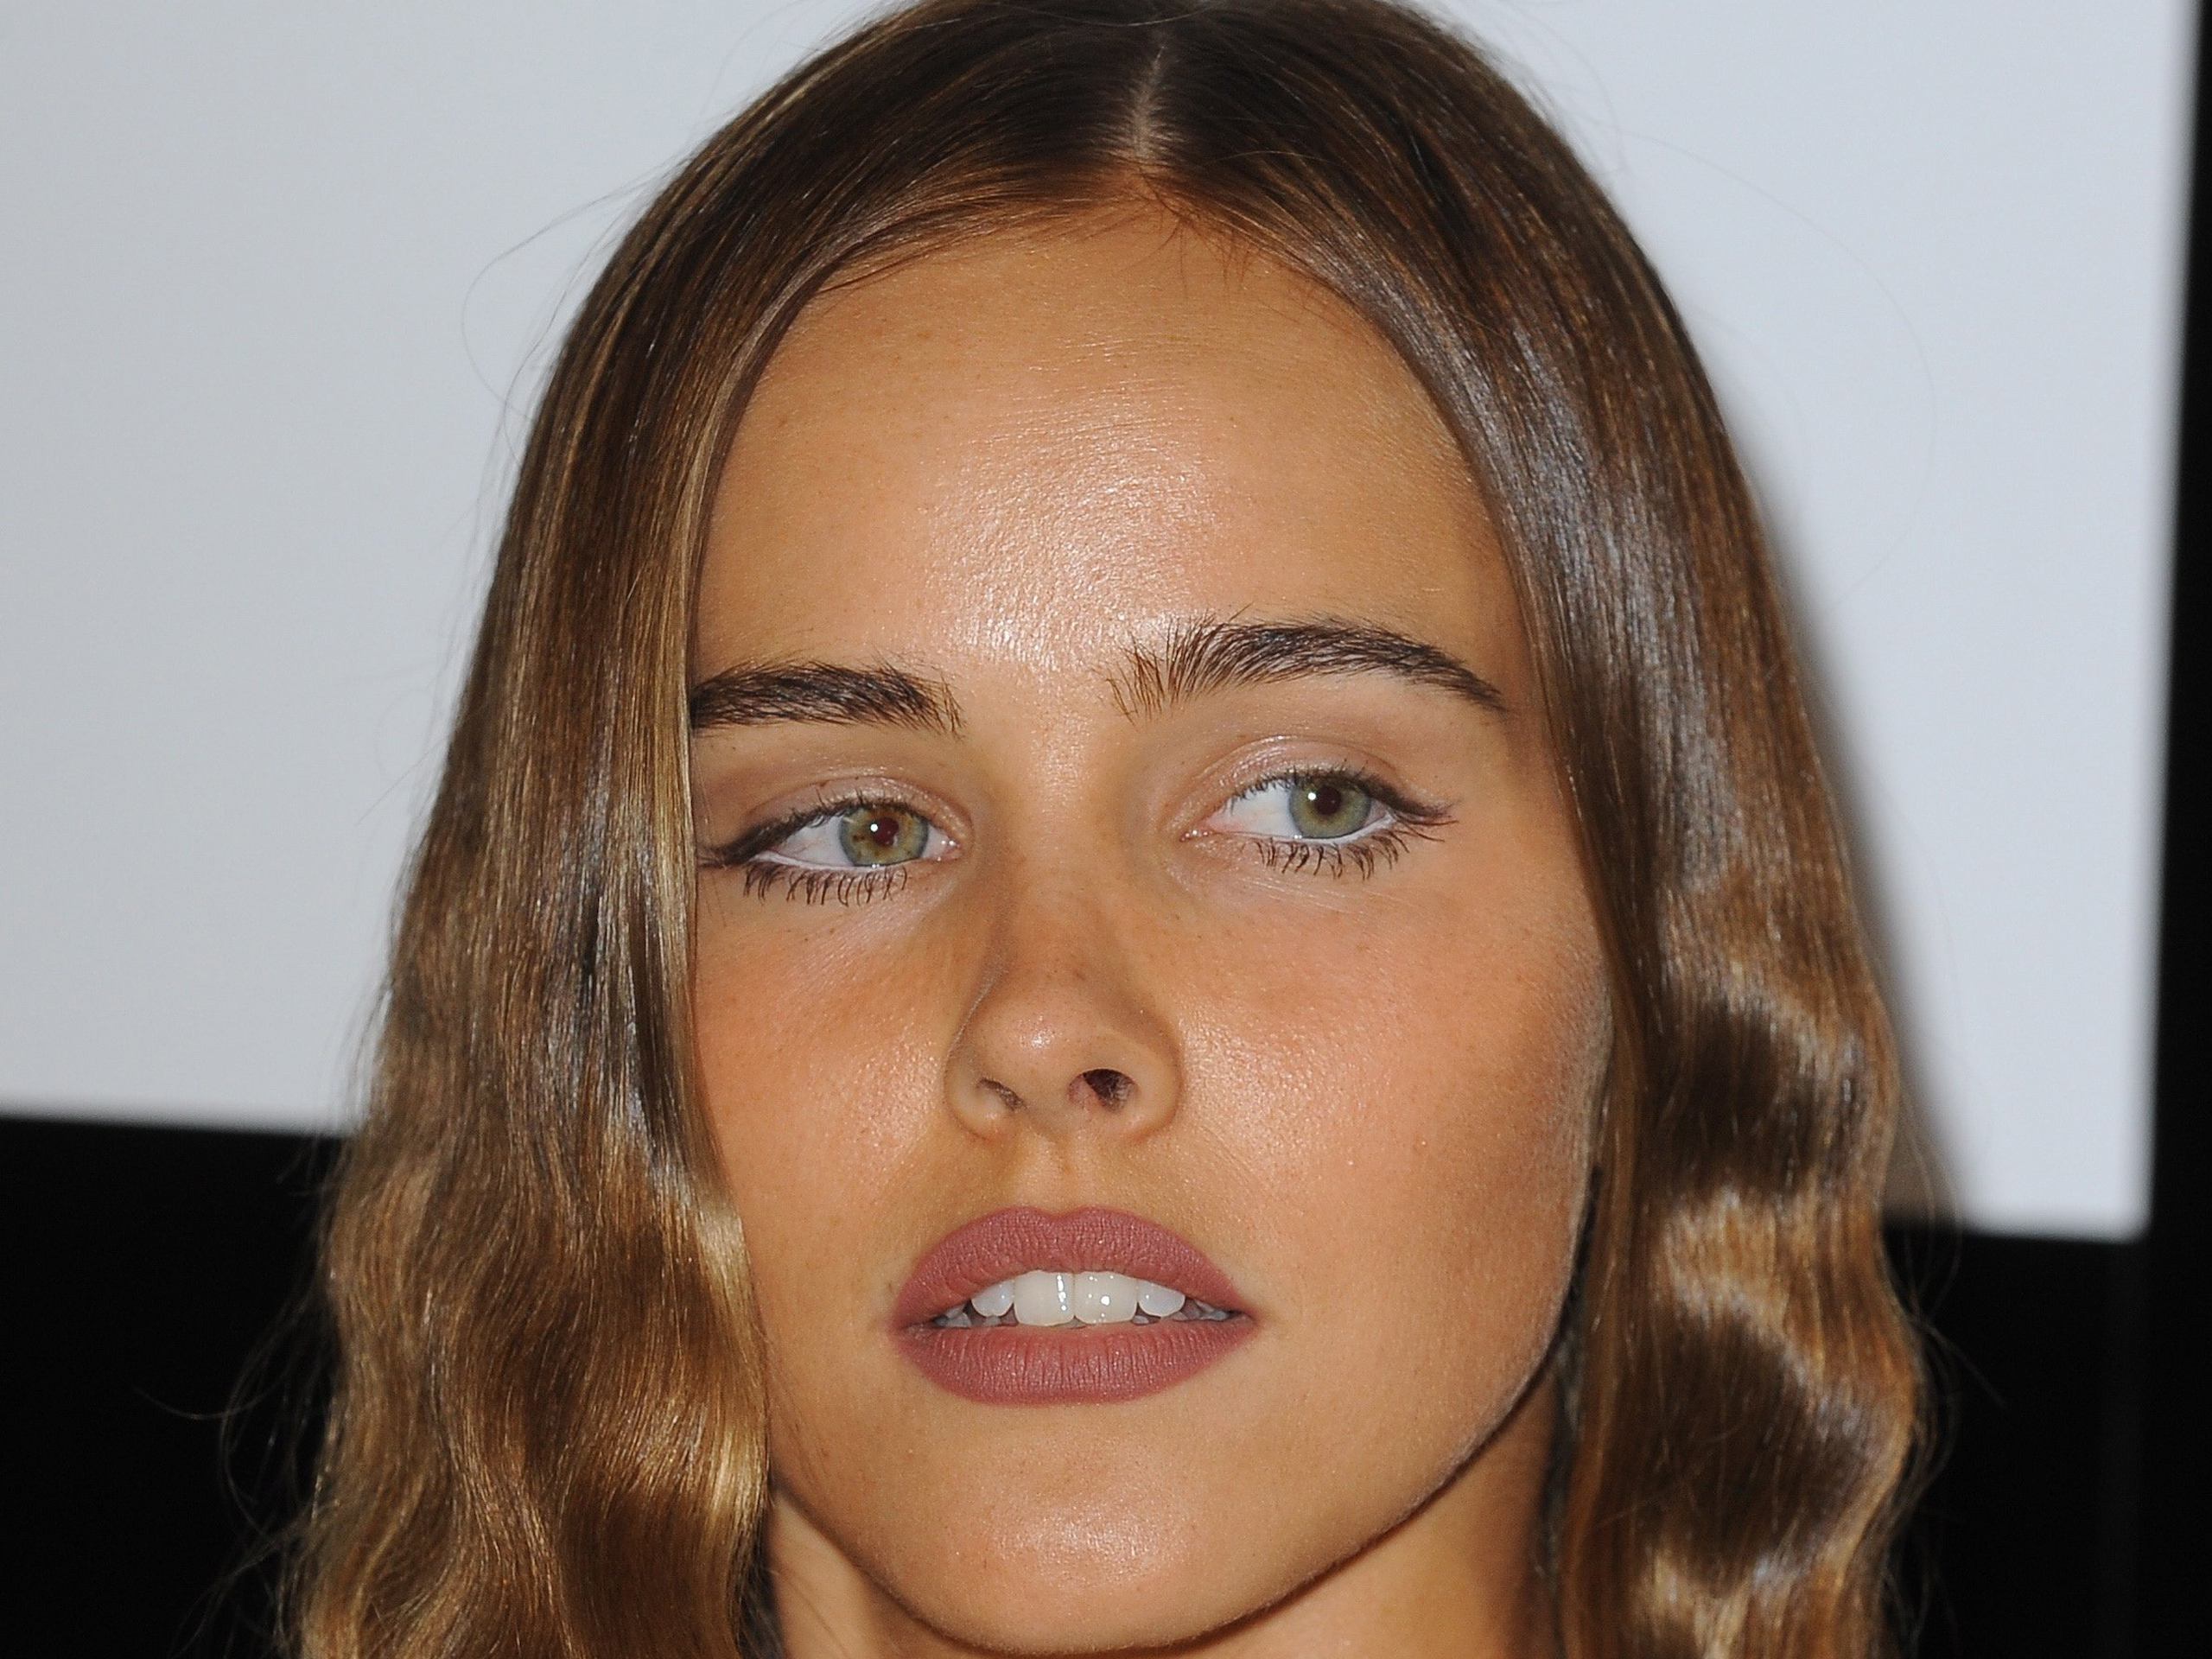 isabel lucas net worthisabel lucas movies, isabel lucas immortals, isabel lucas 2015, isabel lucas tumblr, isabel lucas give me love, isabel lucas instagram, isabel lucas red dawn, isabel lucas imdb, isabel lucas ed sheeran, isabel lucas fansite, isabel lucas style, isabel lucas husband, isabel lucas twitter, isabel lucas net worth, isabel lucas bio, isabel lucas house, isabel lucas facebook, isabel lucas zimbio